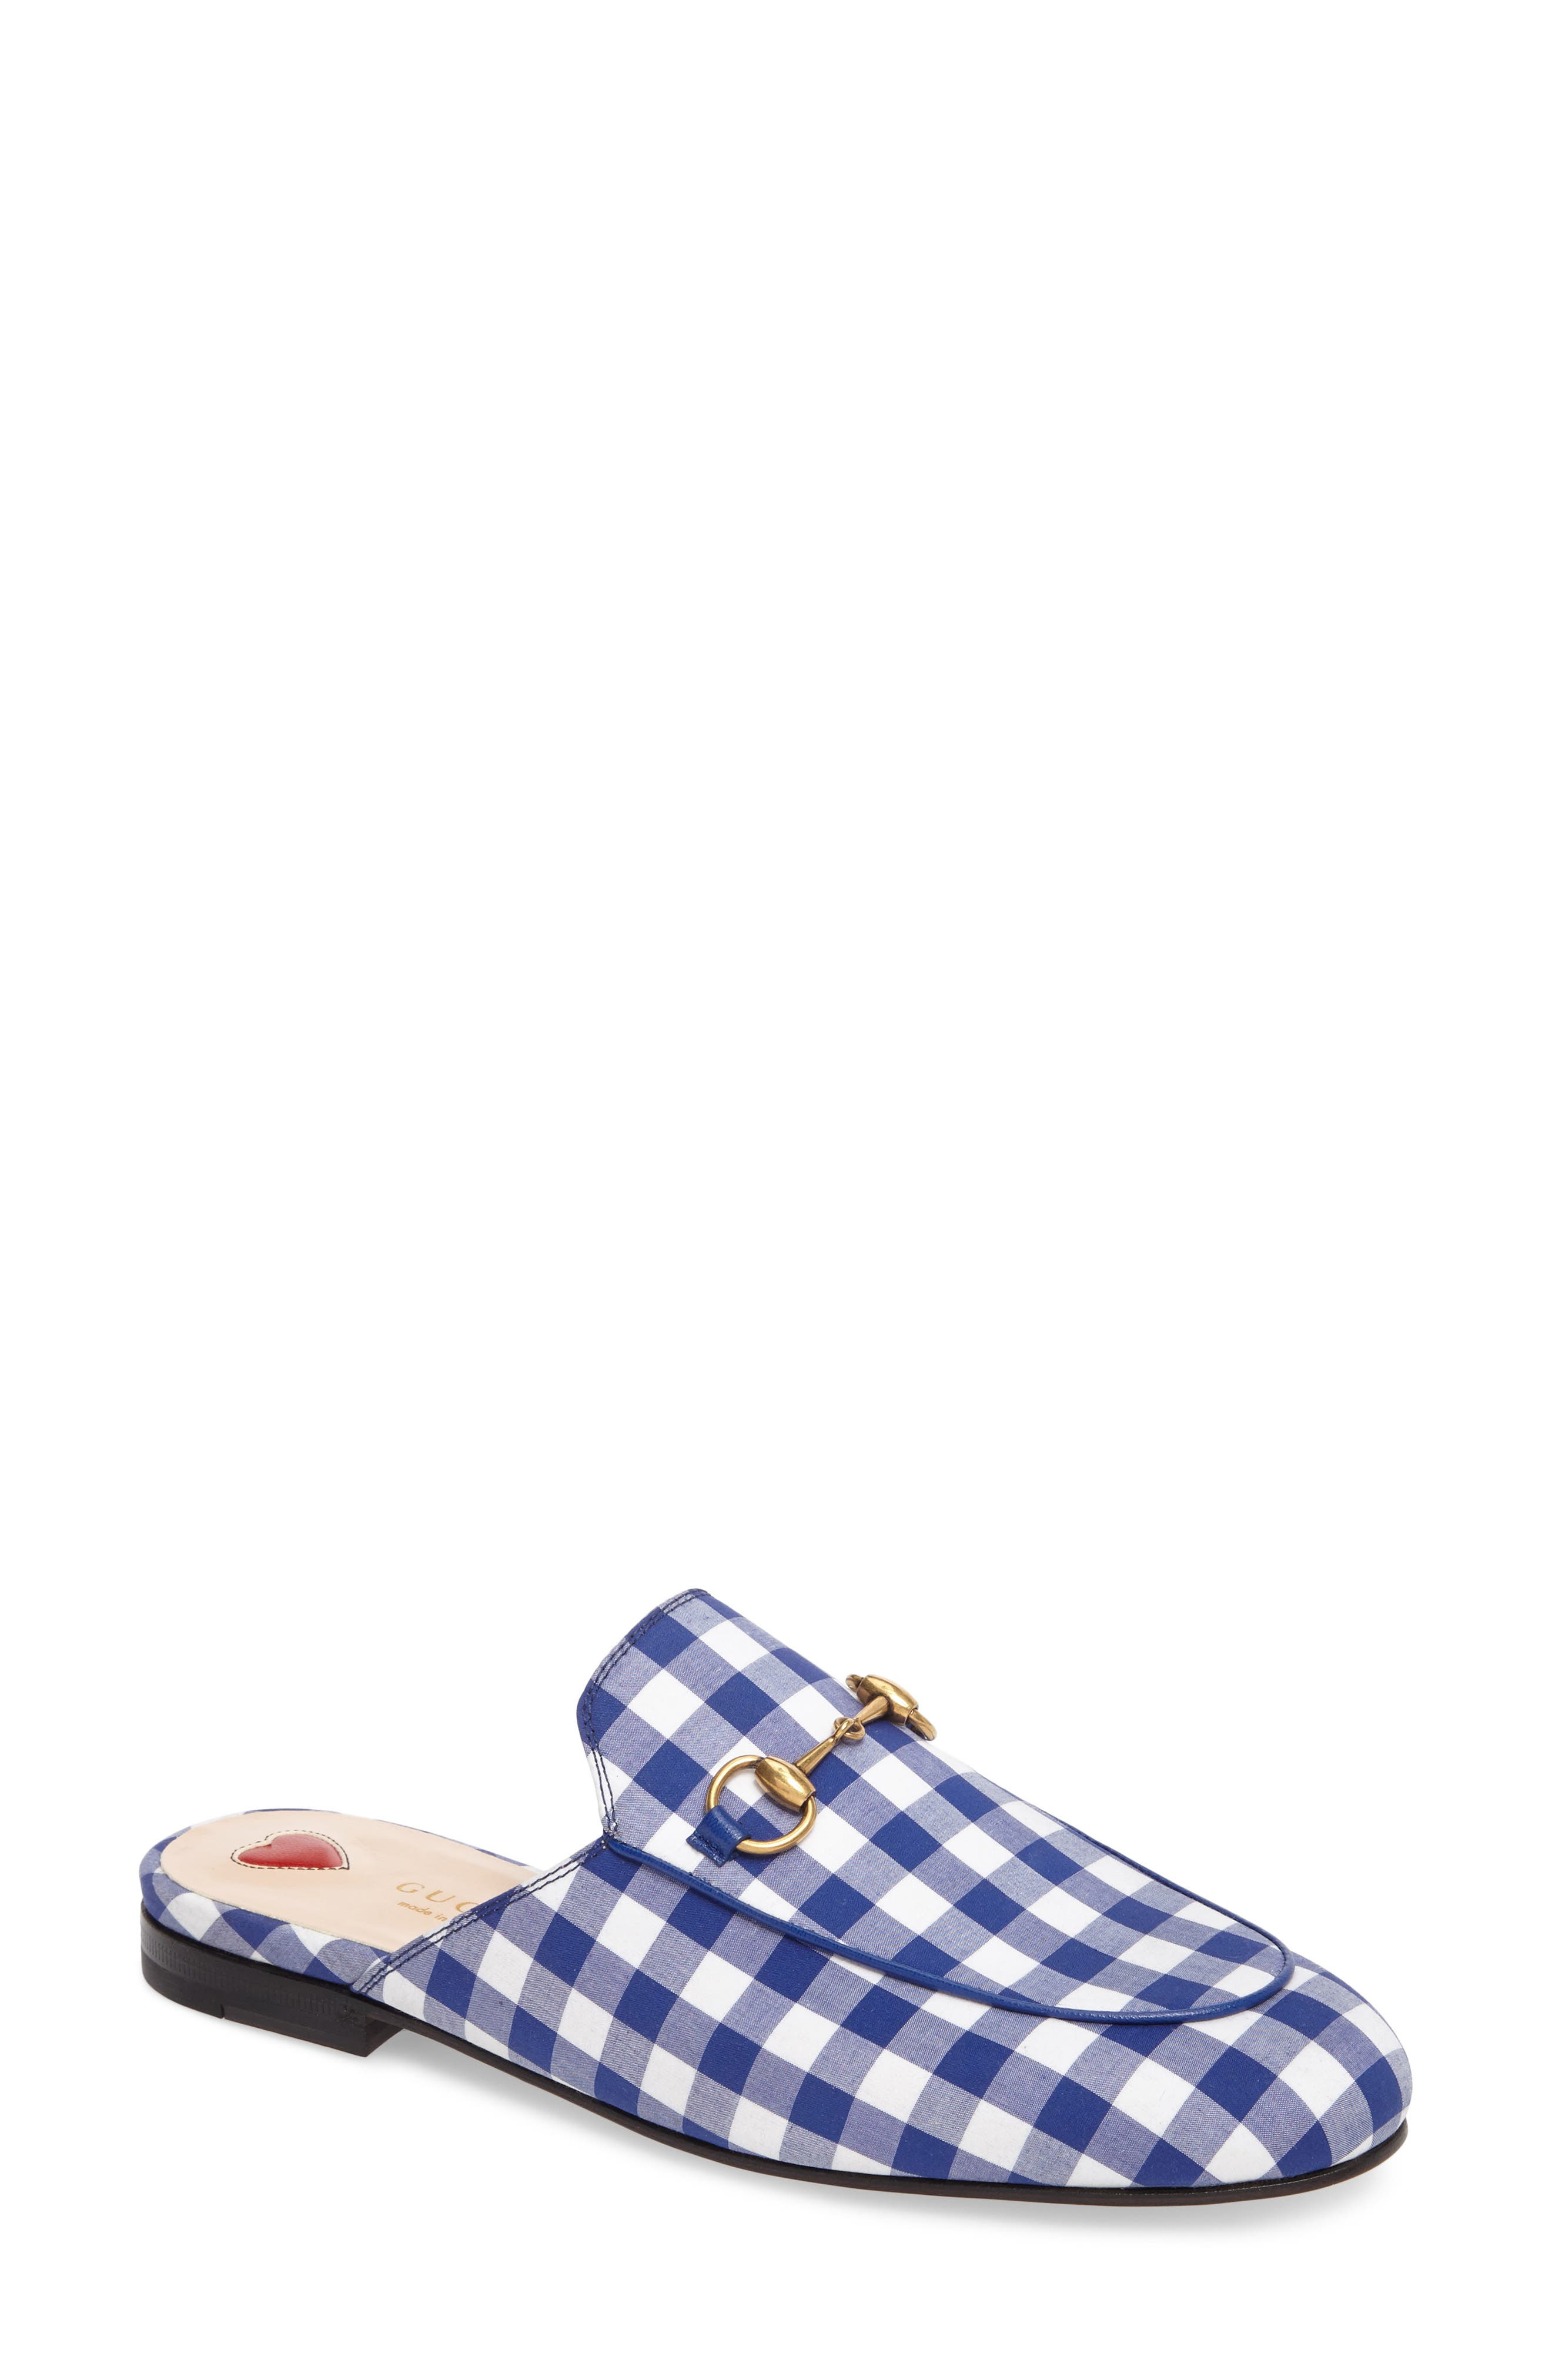 Princetown Gingham Loafer Mule,                         Main,                         color, White/ Electric Blue